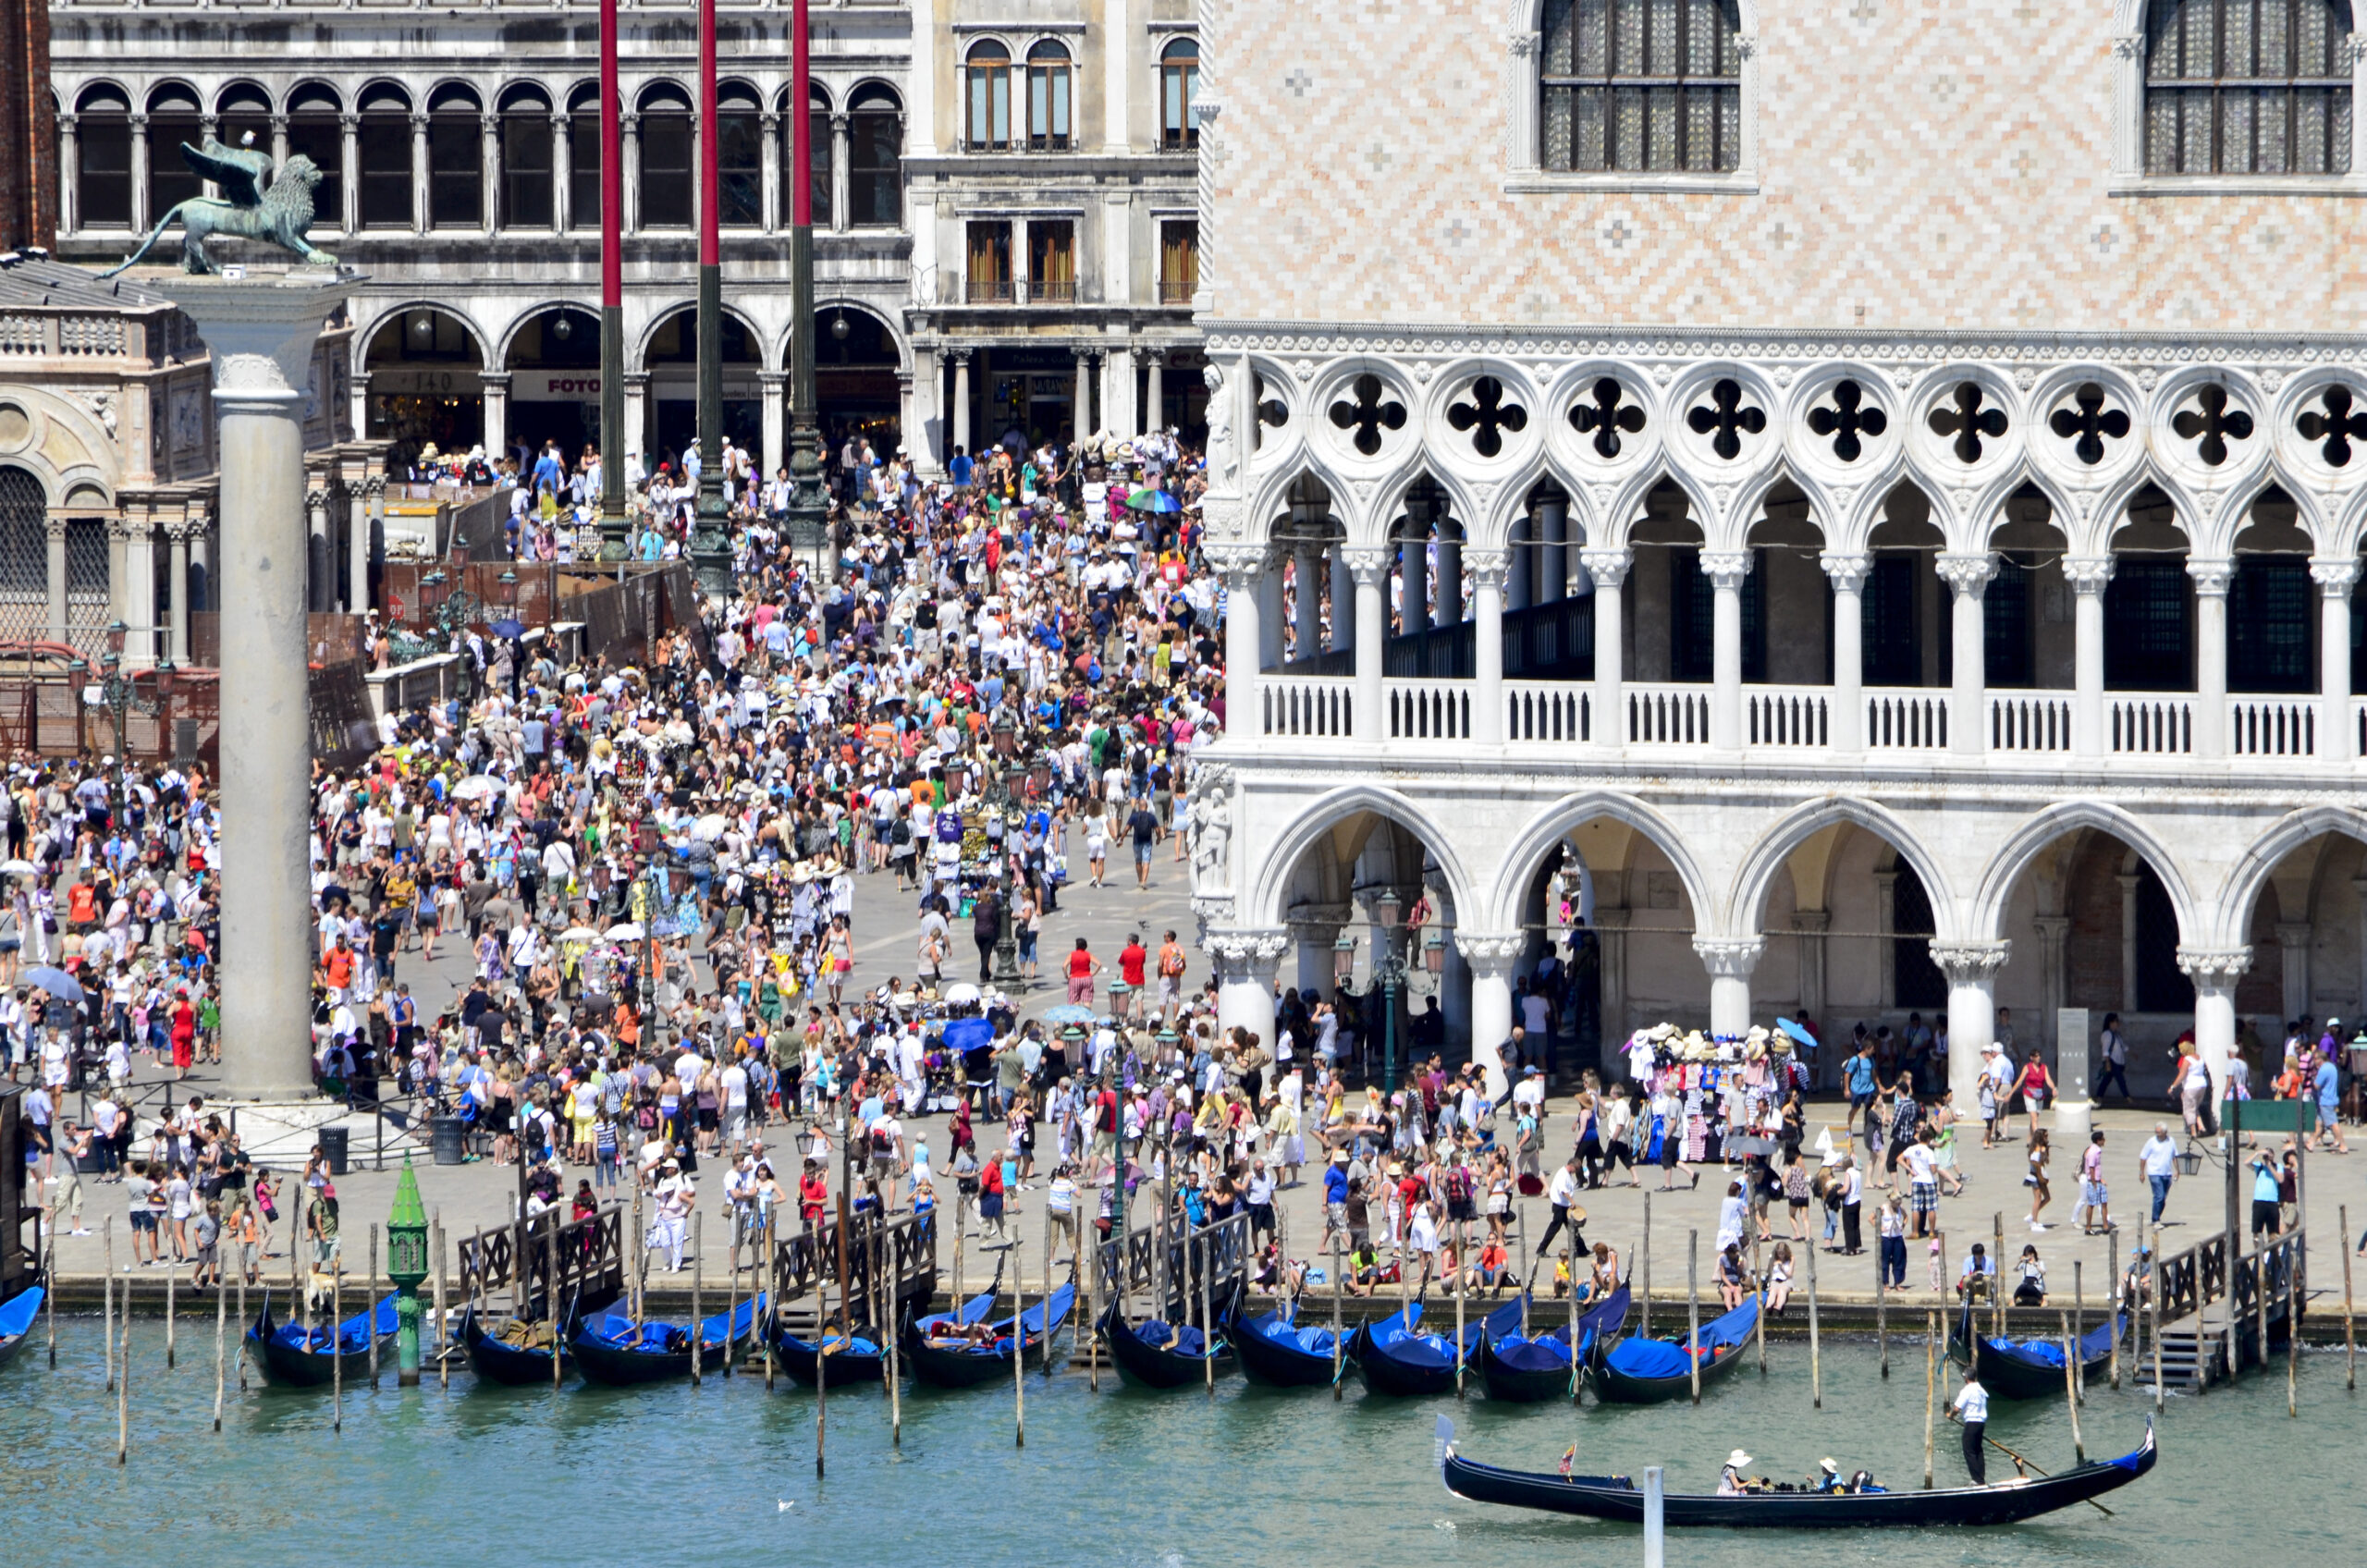 Tourists in St Mark's Square, Venice